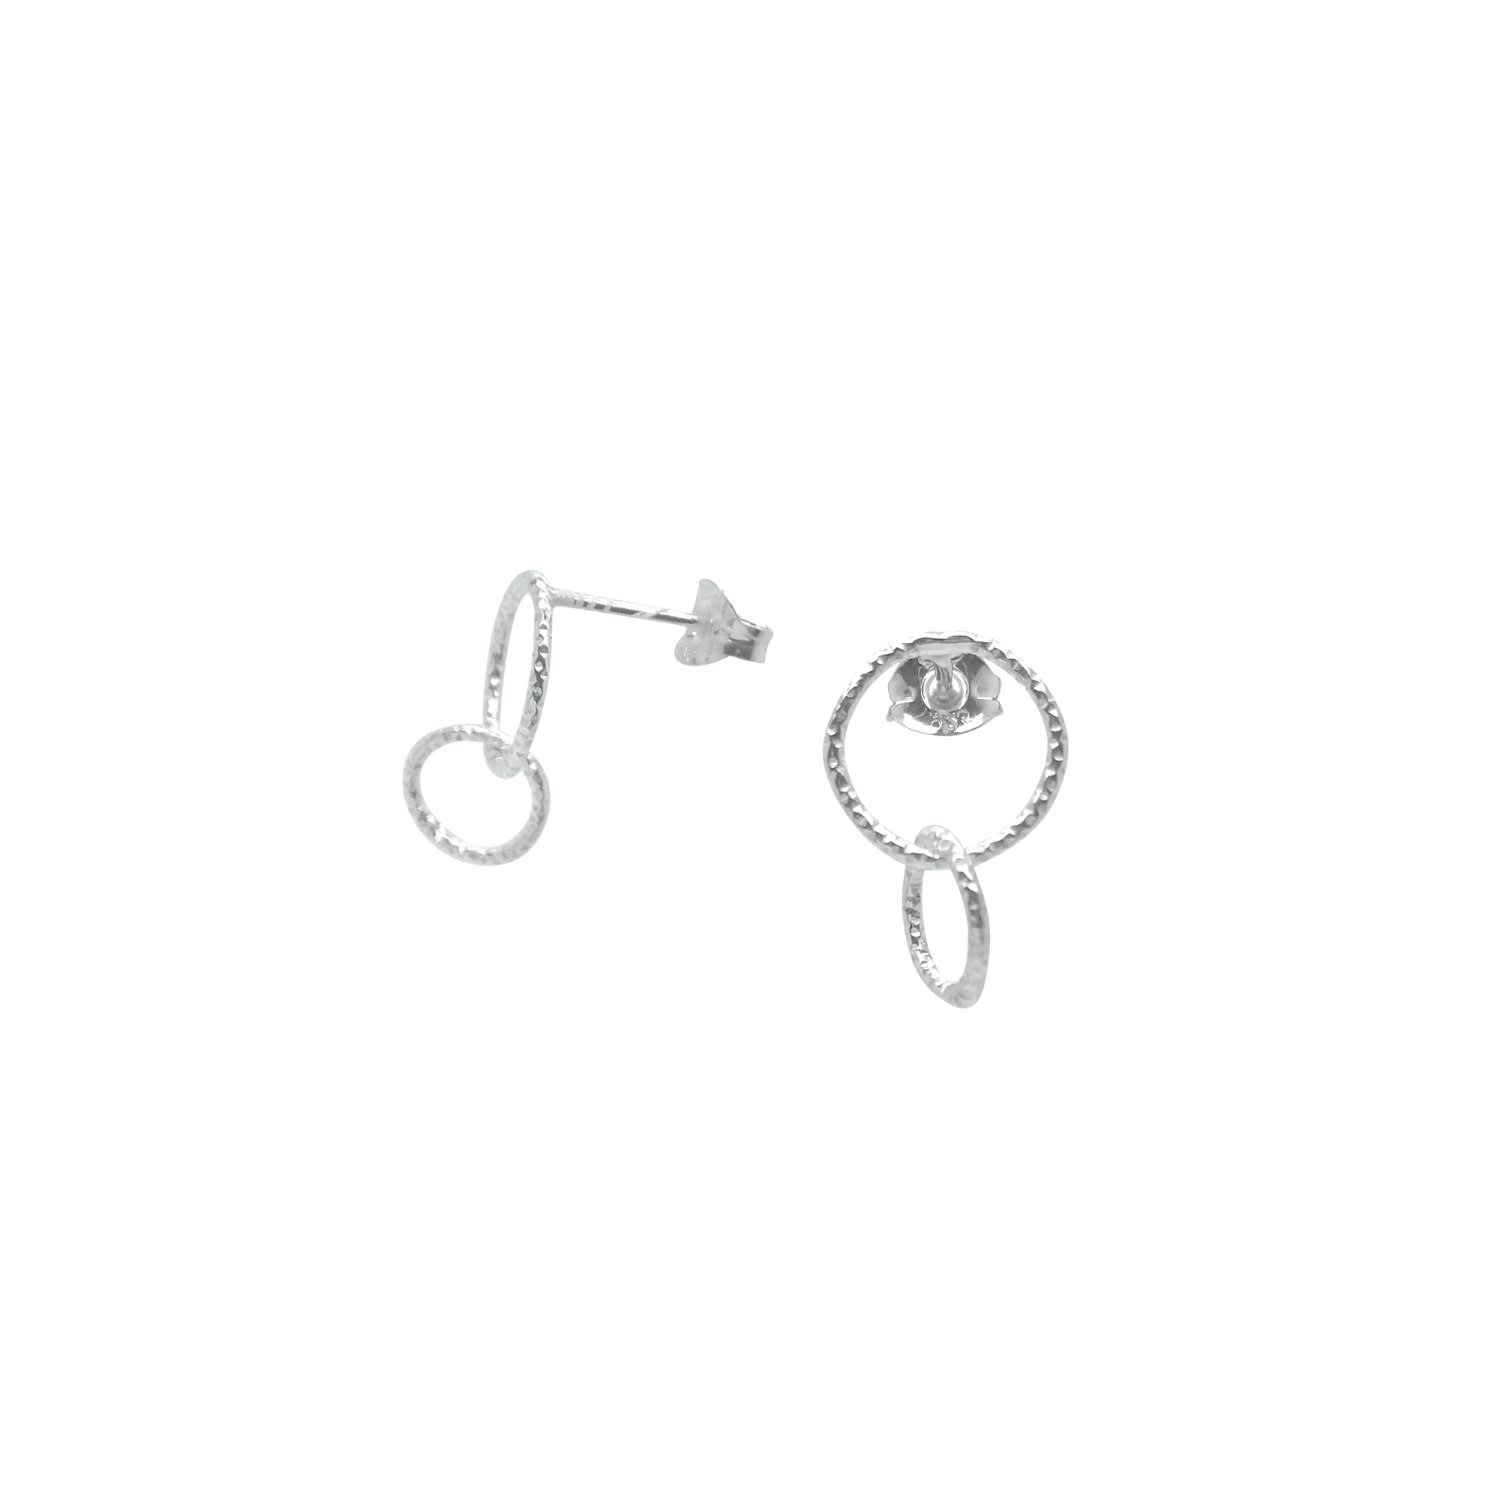 edd5a549b6c Circle Linked Stud Earrings Sterling Silver by Lucy Ashton Jewellery